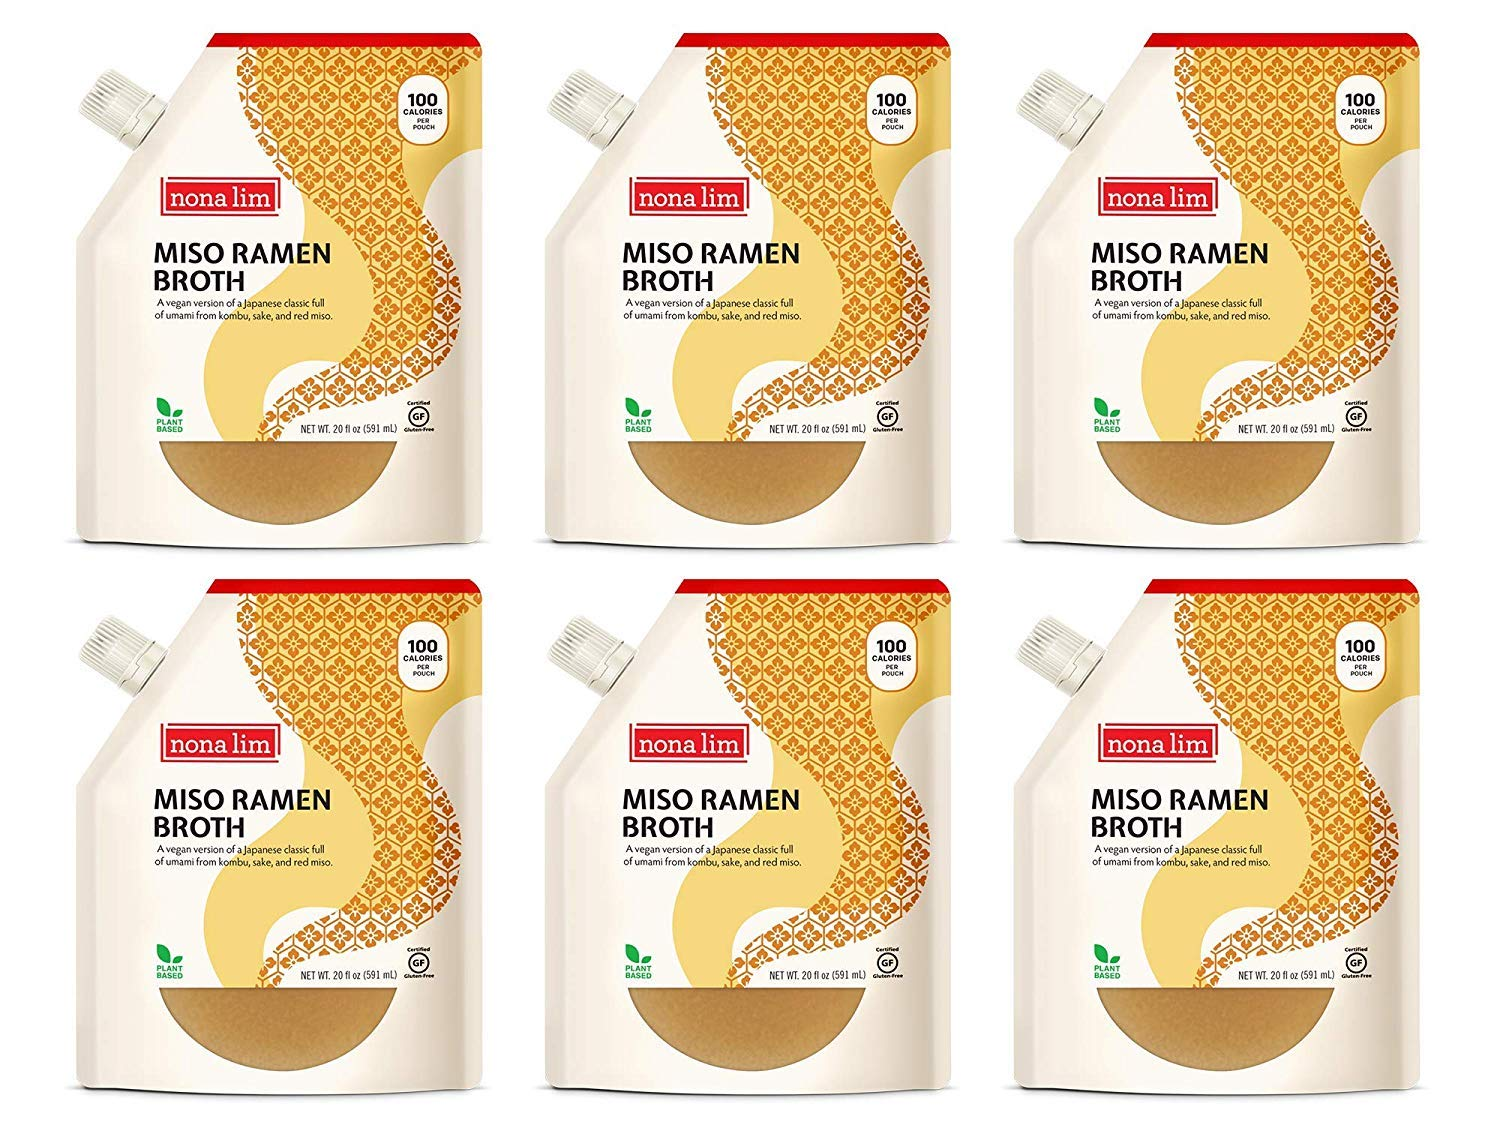 Nona Lim Miso Ramen Broth - Vegan, Gluten Free, Dairy Free (20 oz., 6 Count) - Packaging May Vary by Nona Lim